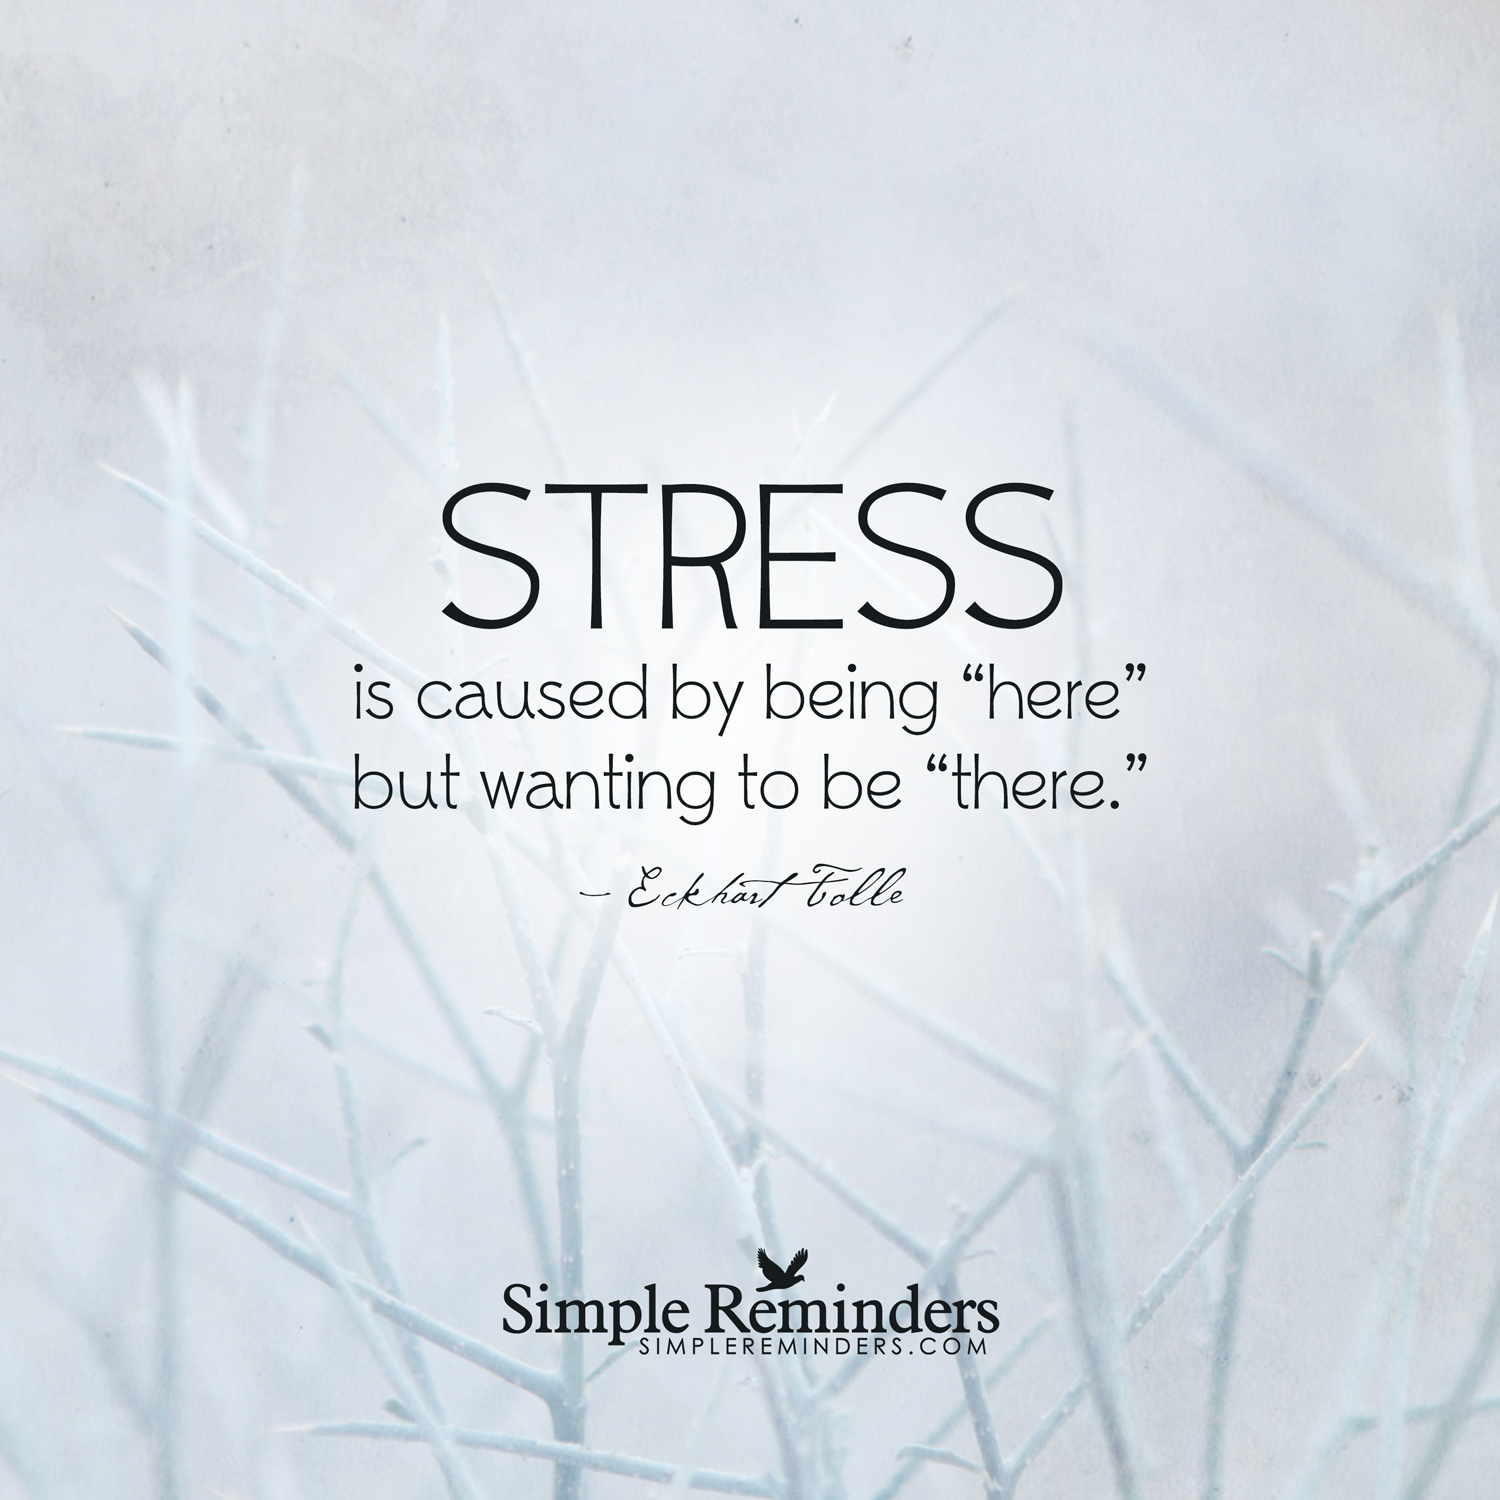 The basis of stress -- Eckhart Tolle